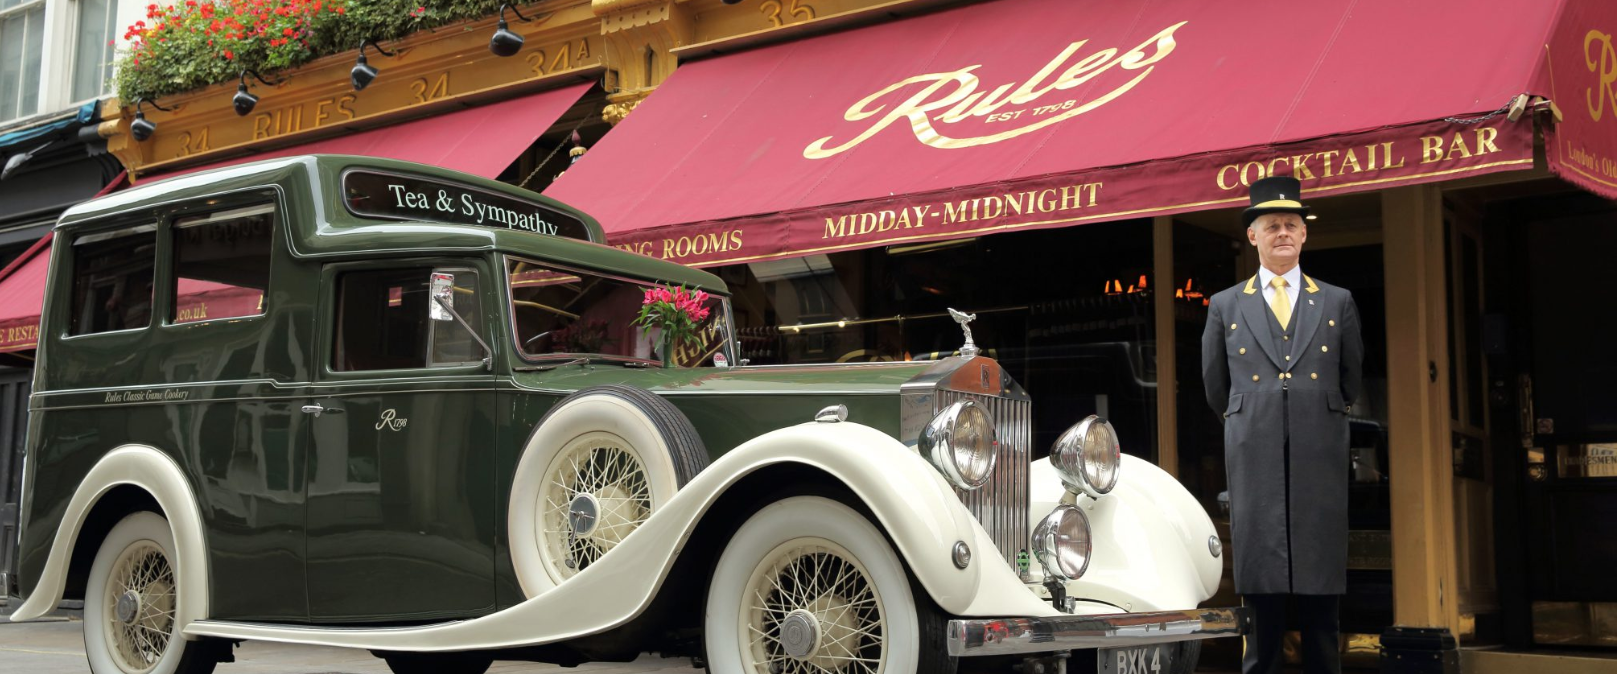 When in London . . .  Rules  - The Oldest Restaurant in London